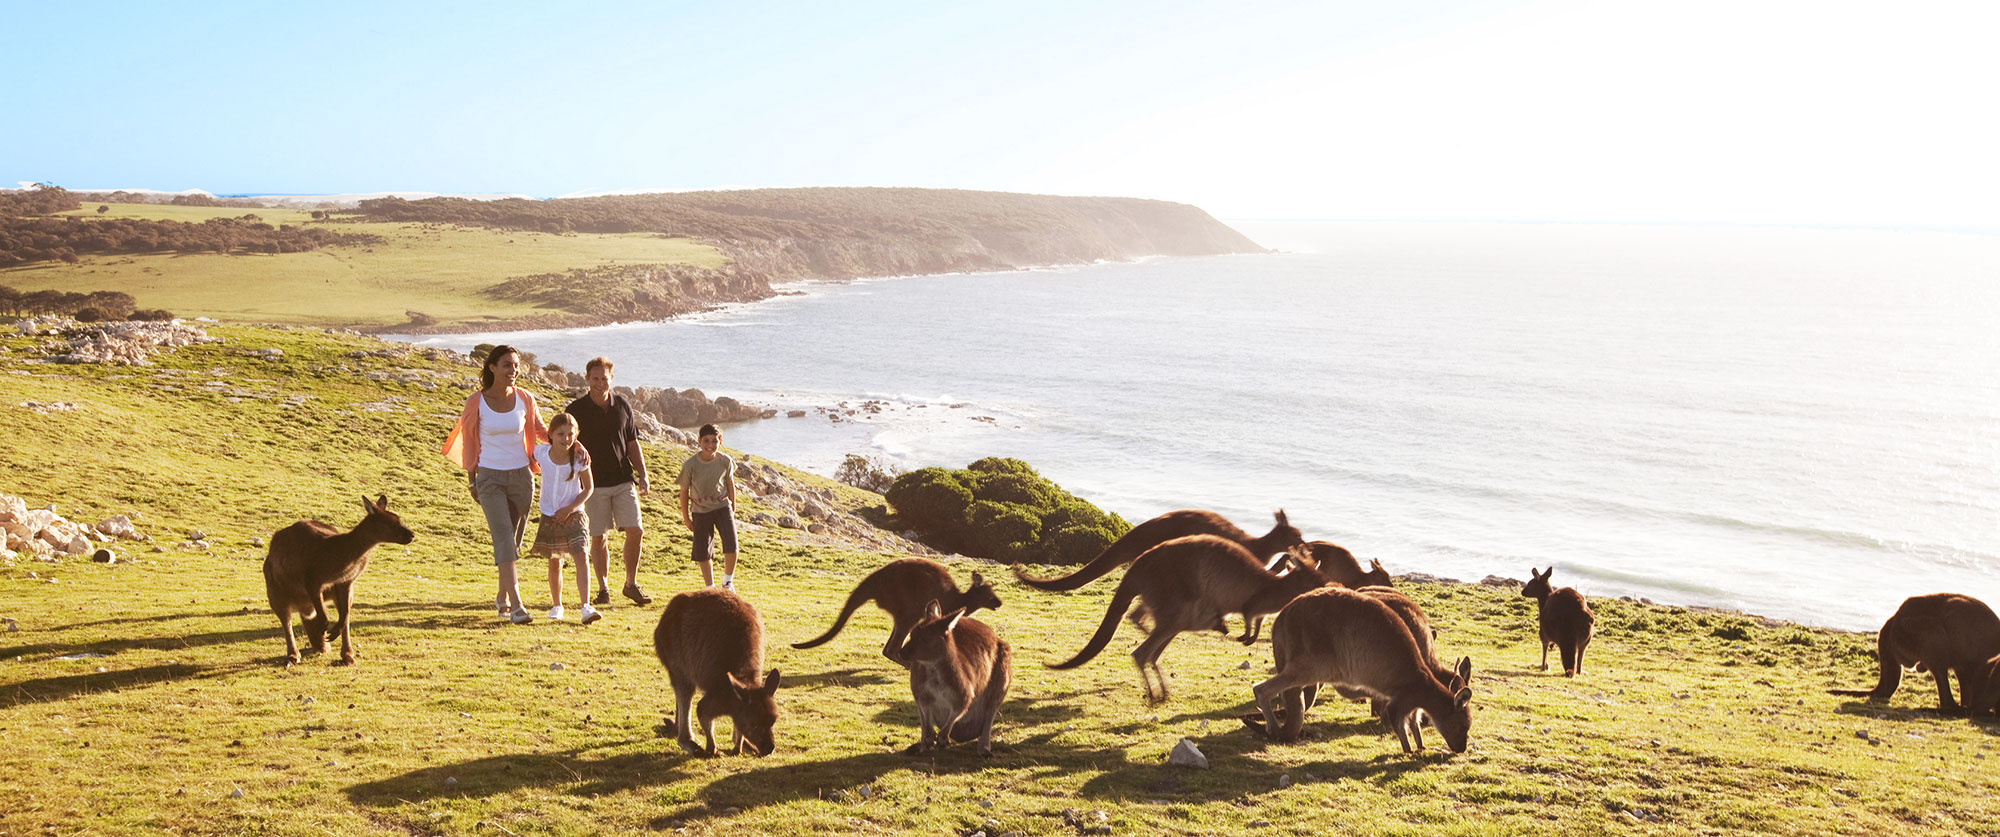 Family Holidays South Australia Package Kangaroo Island - Vacation to australia